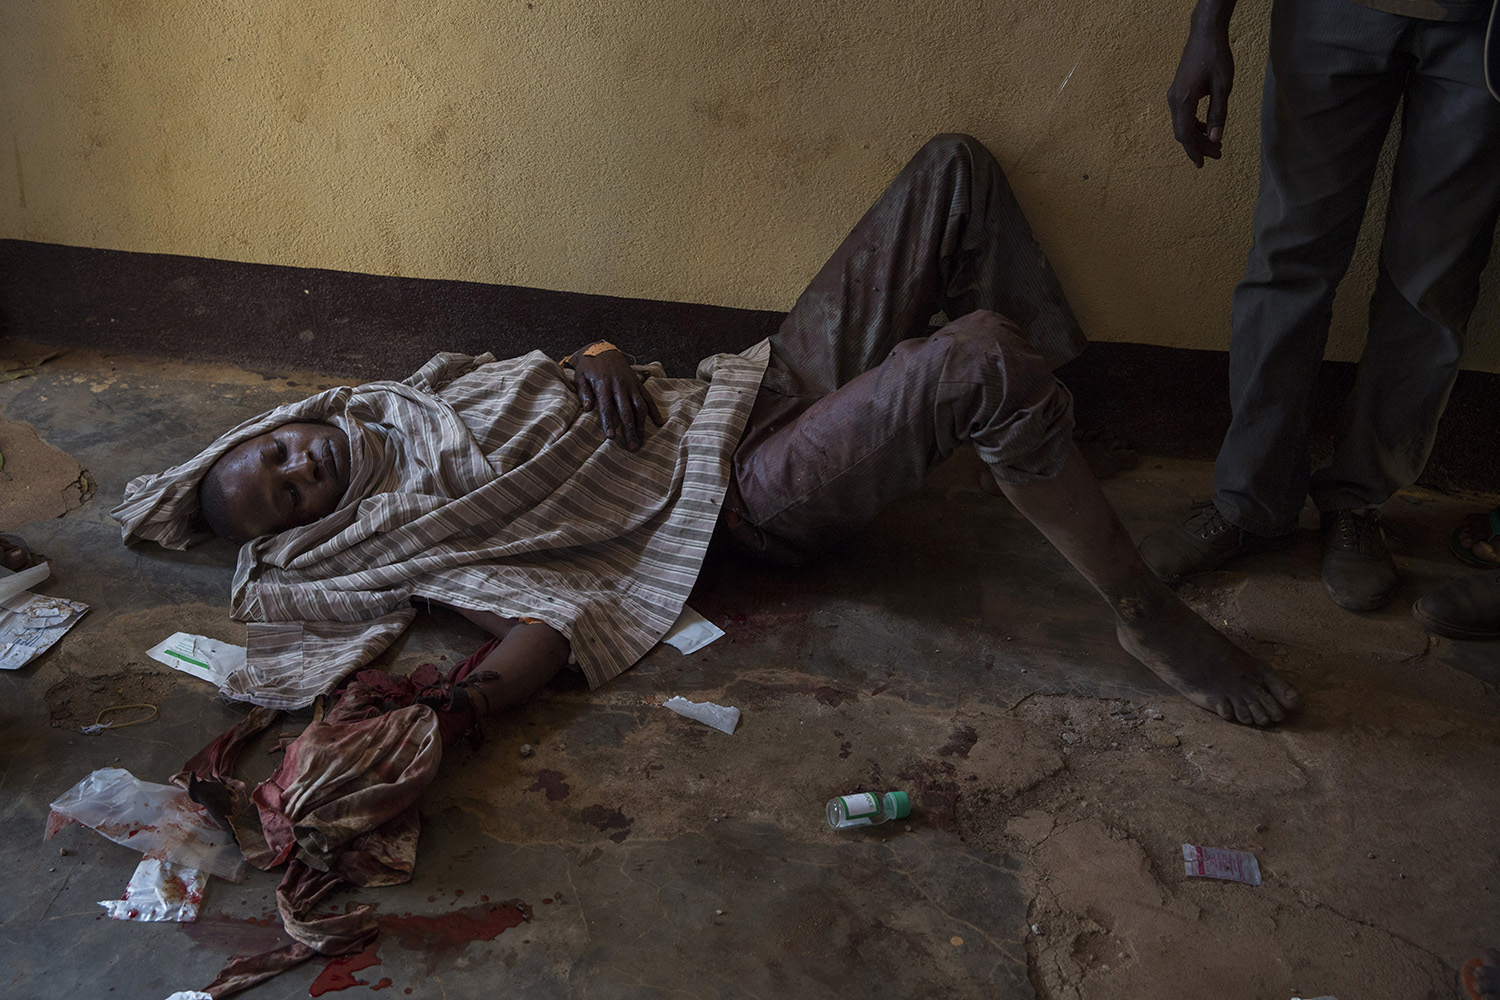 Dec. 5, 2013. A man who sustained wounds by a machete awaits treatment at the mosque.